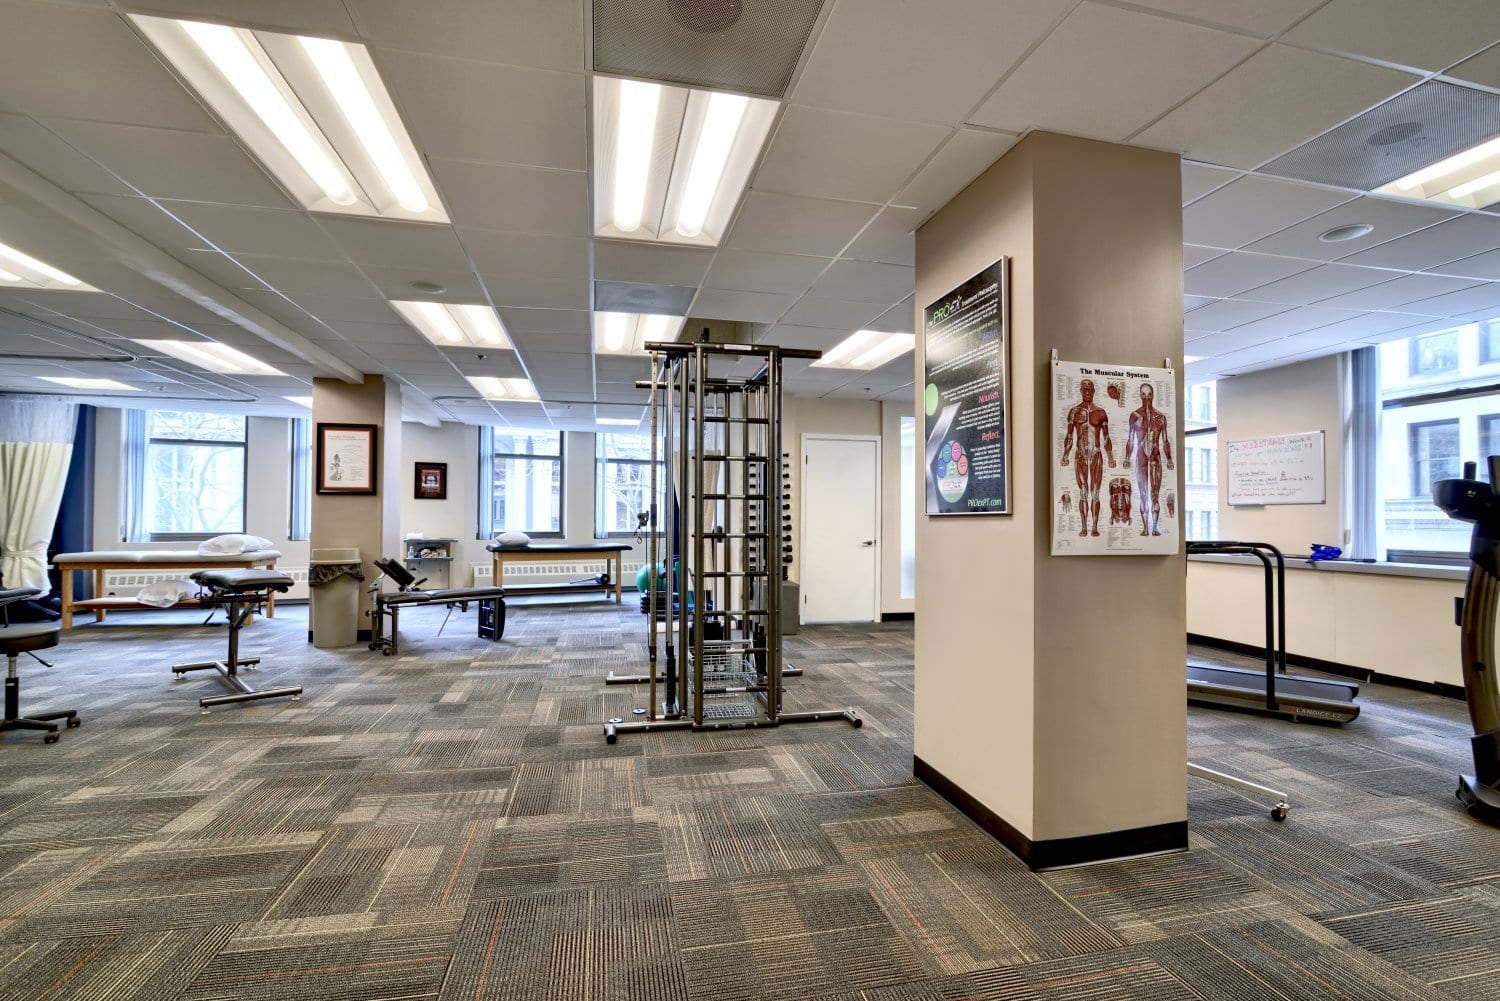 Here is a photo of the interior of our physical therapy clinic in Boston, Massachusetts.